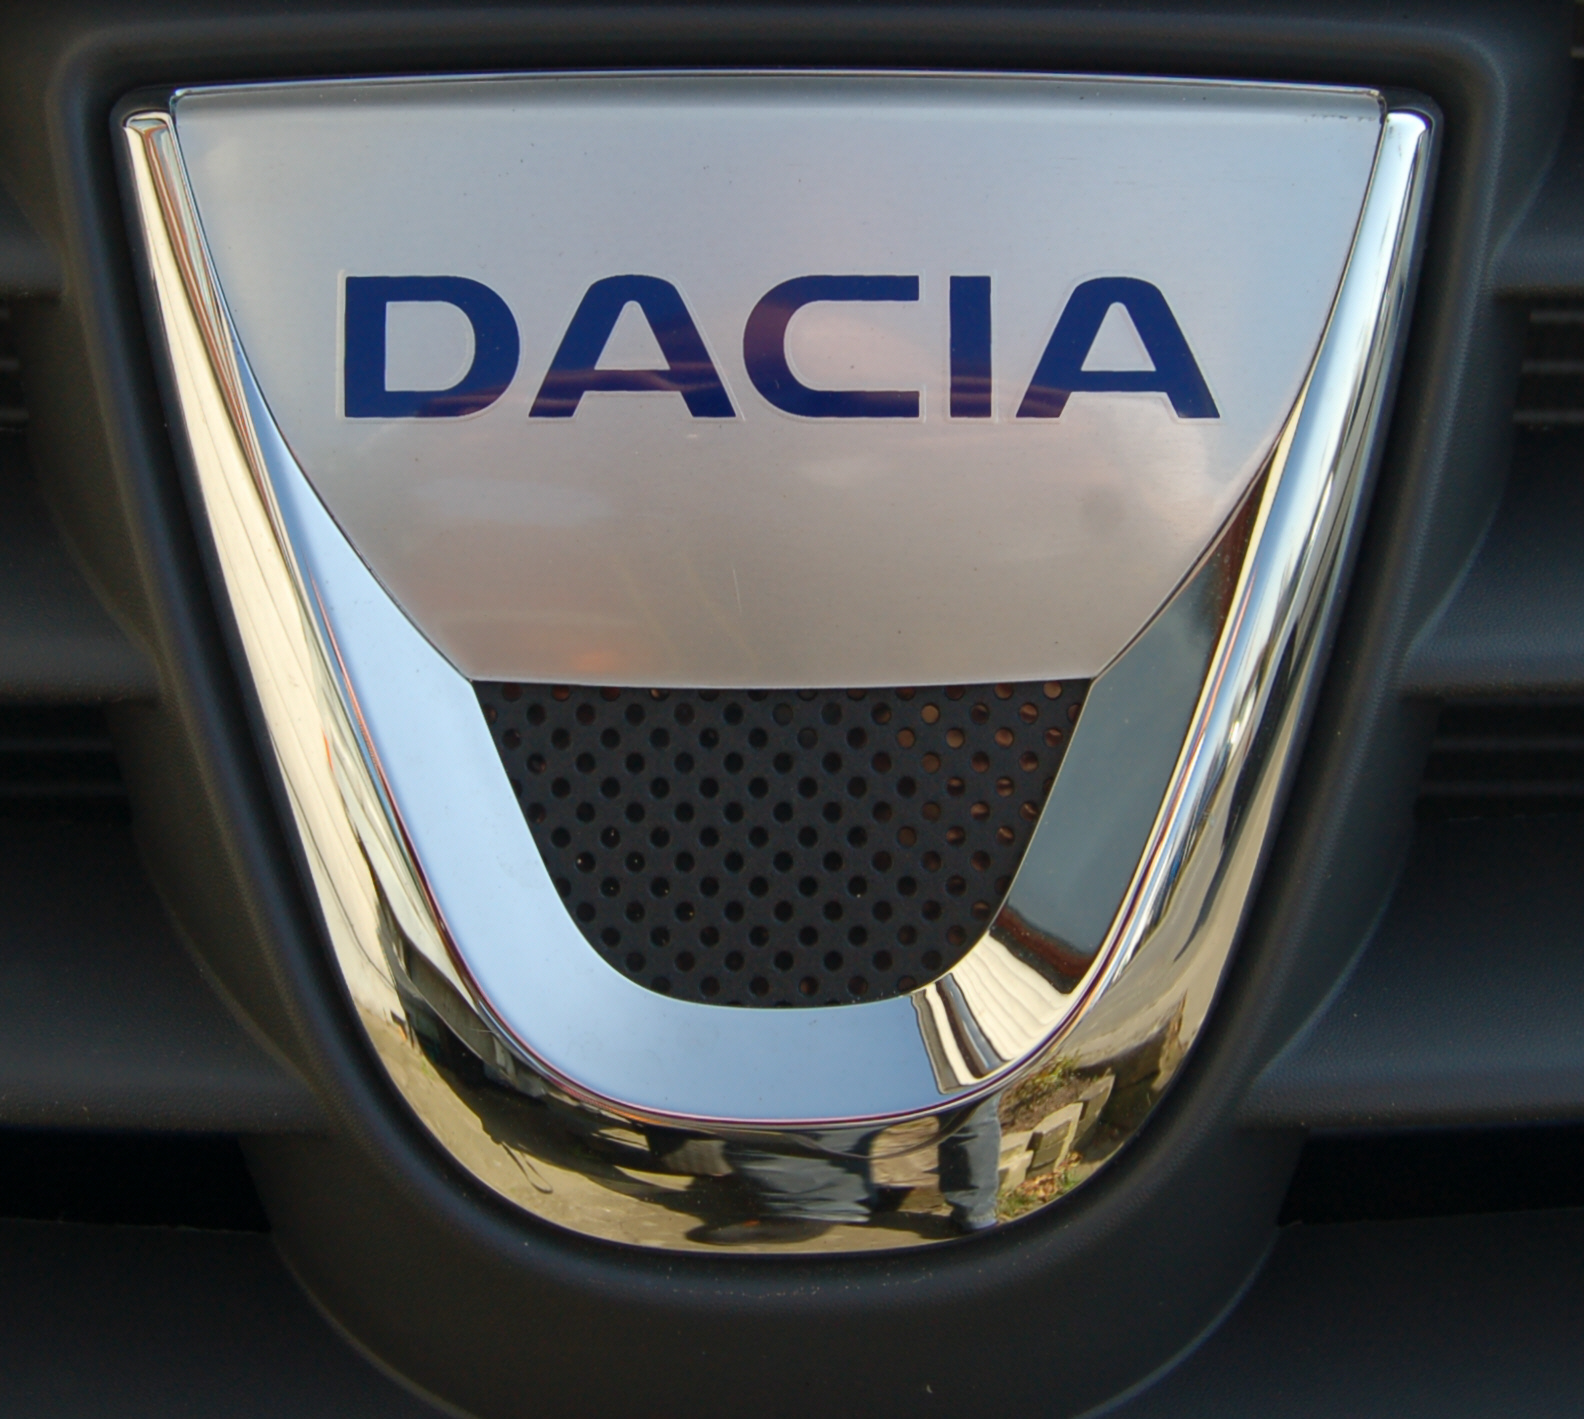 car logos 77 dacia logo. Black Bedroom Furniture Sets. Home Design Ideas